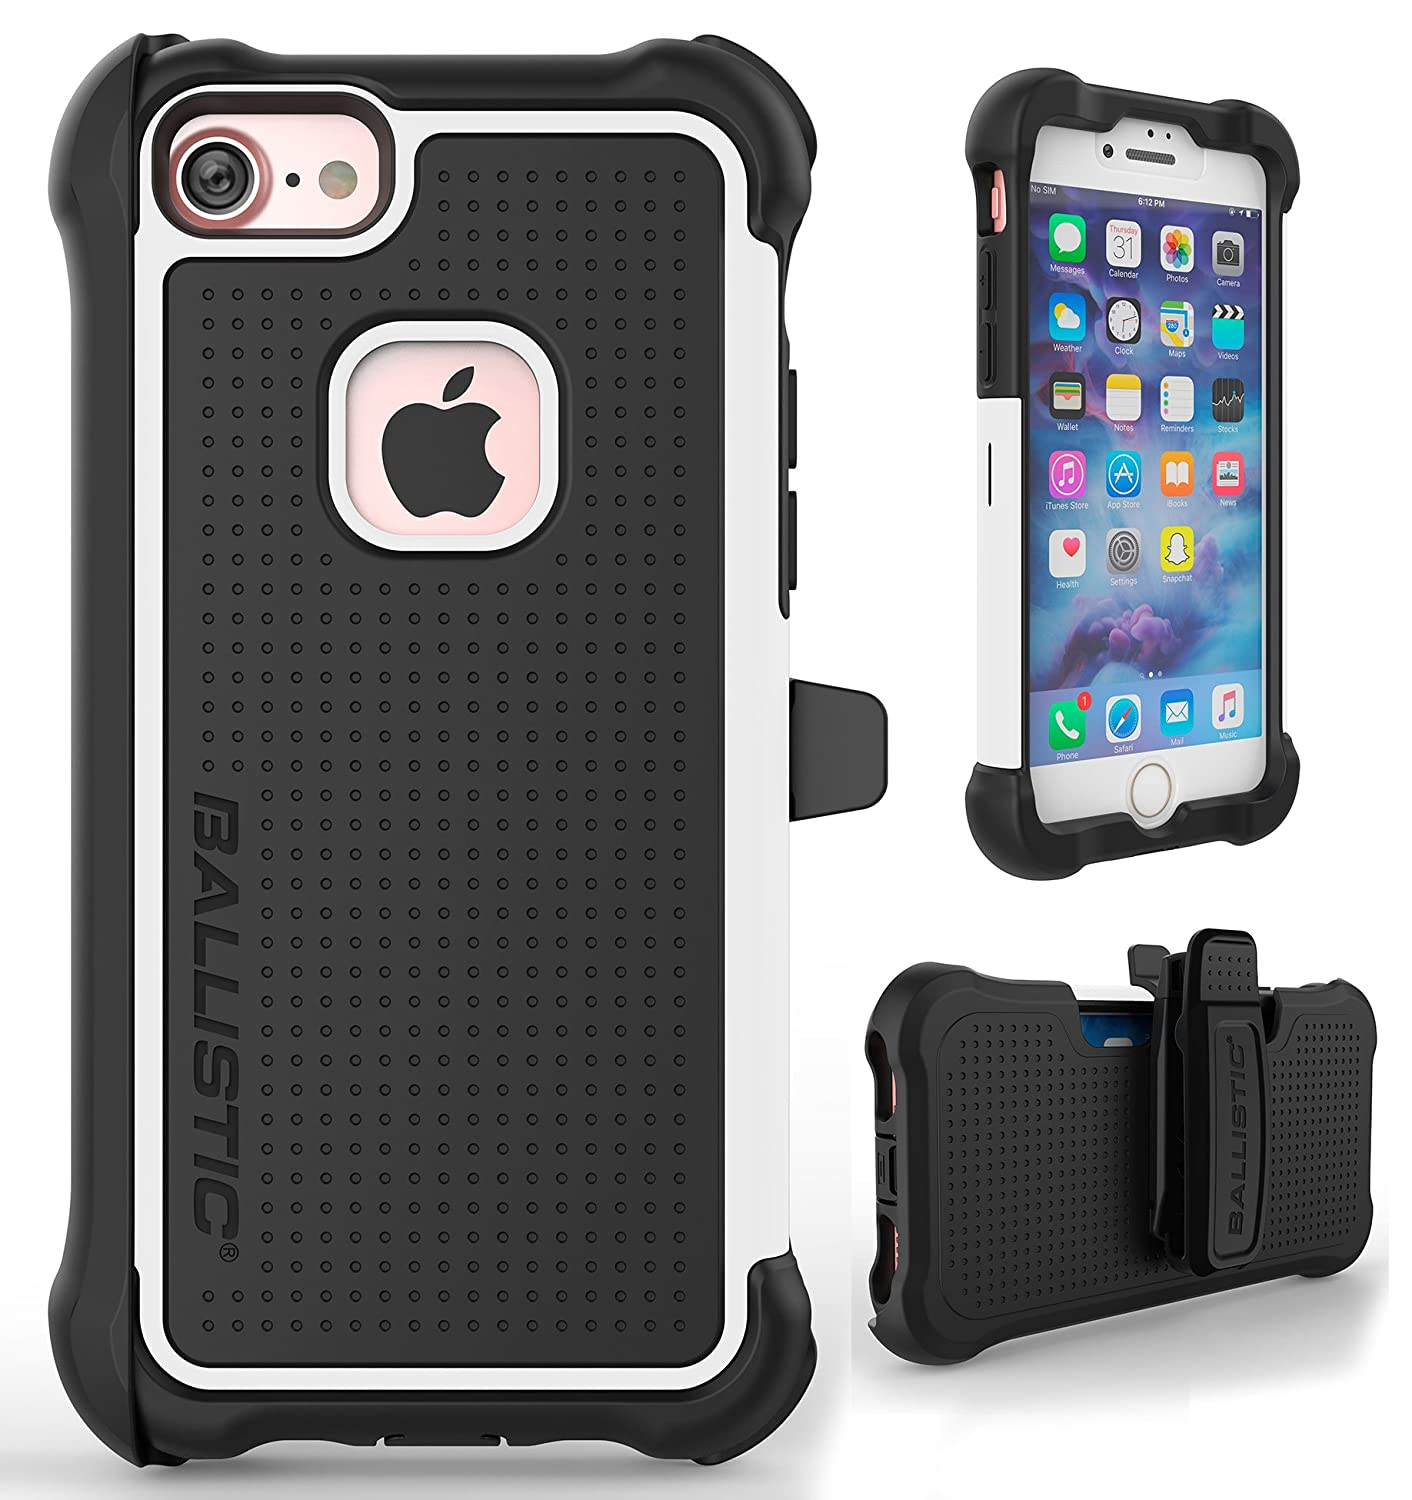 Iphone 7 Case Ballistic Tough Jacket Maxx Heavy Duty Protection Black White Case For Apple Iphone 7 Drop Test Certified 7ft Impact Drop Protection Rugged Rotating Holster Clip Screen Protector